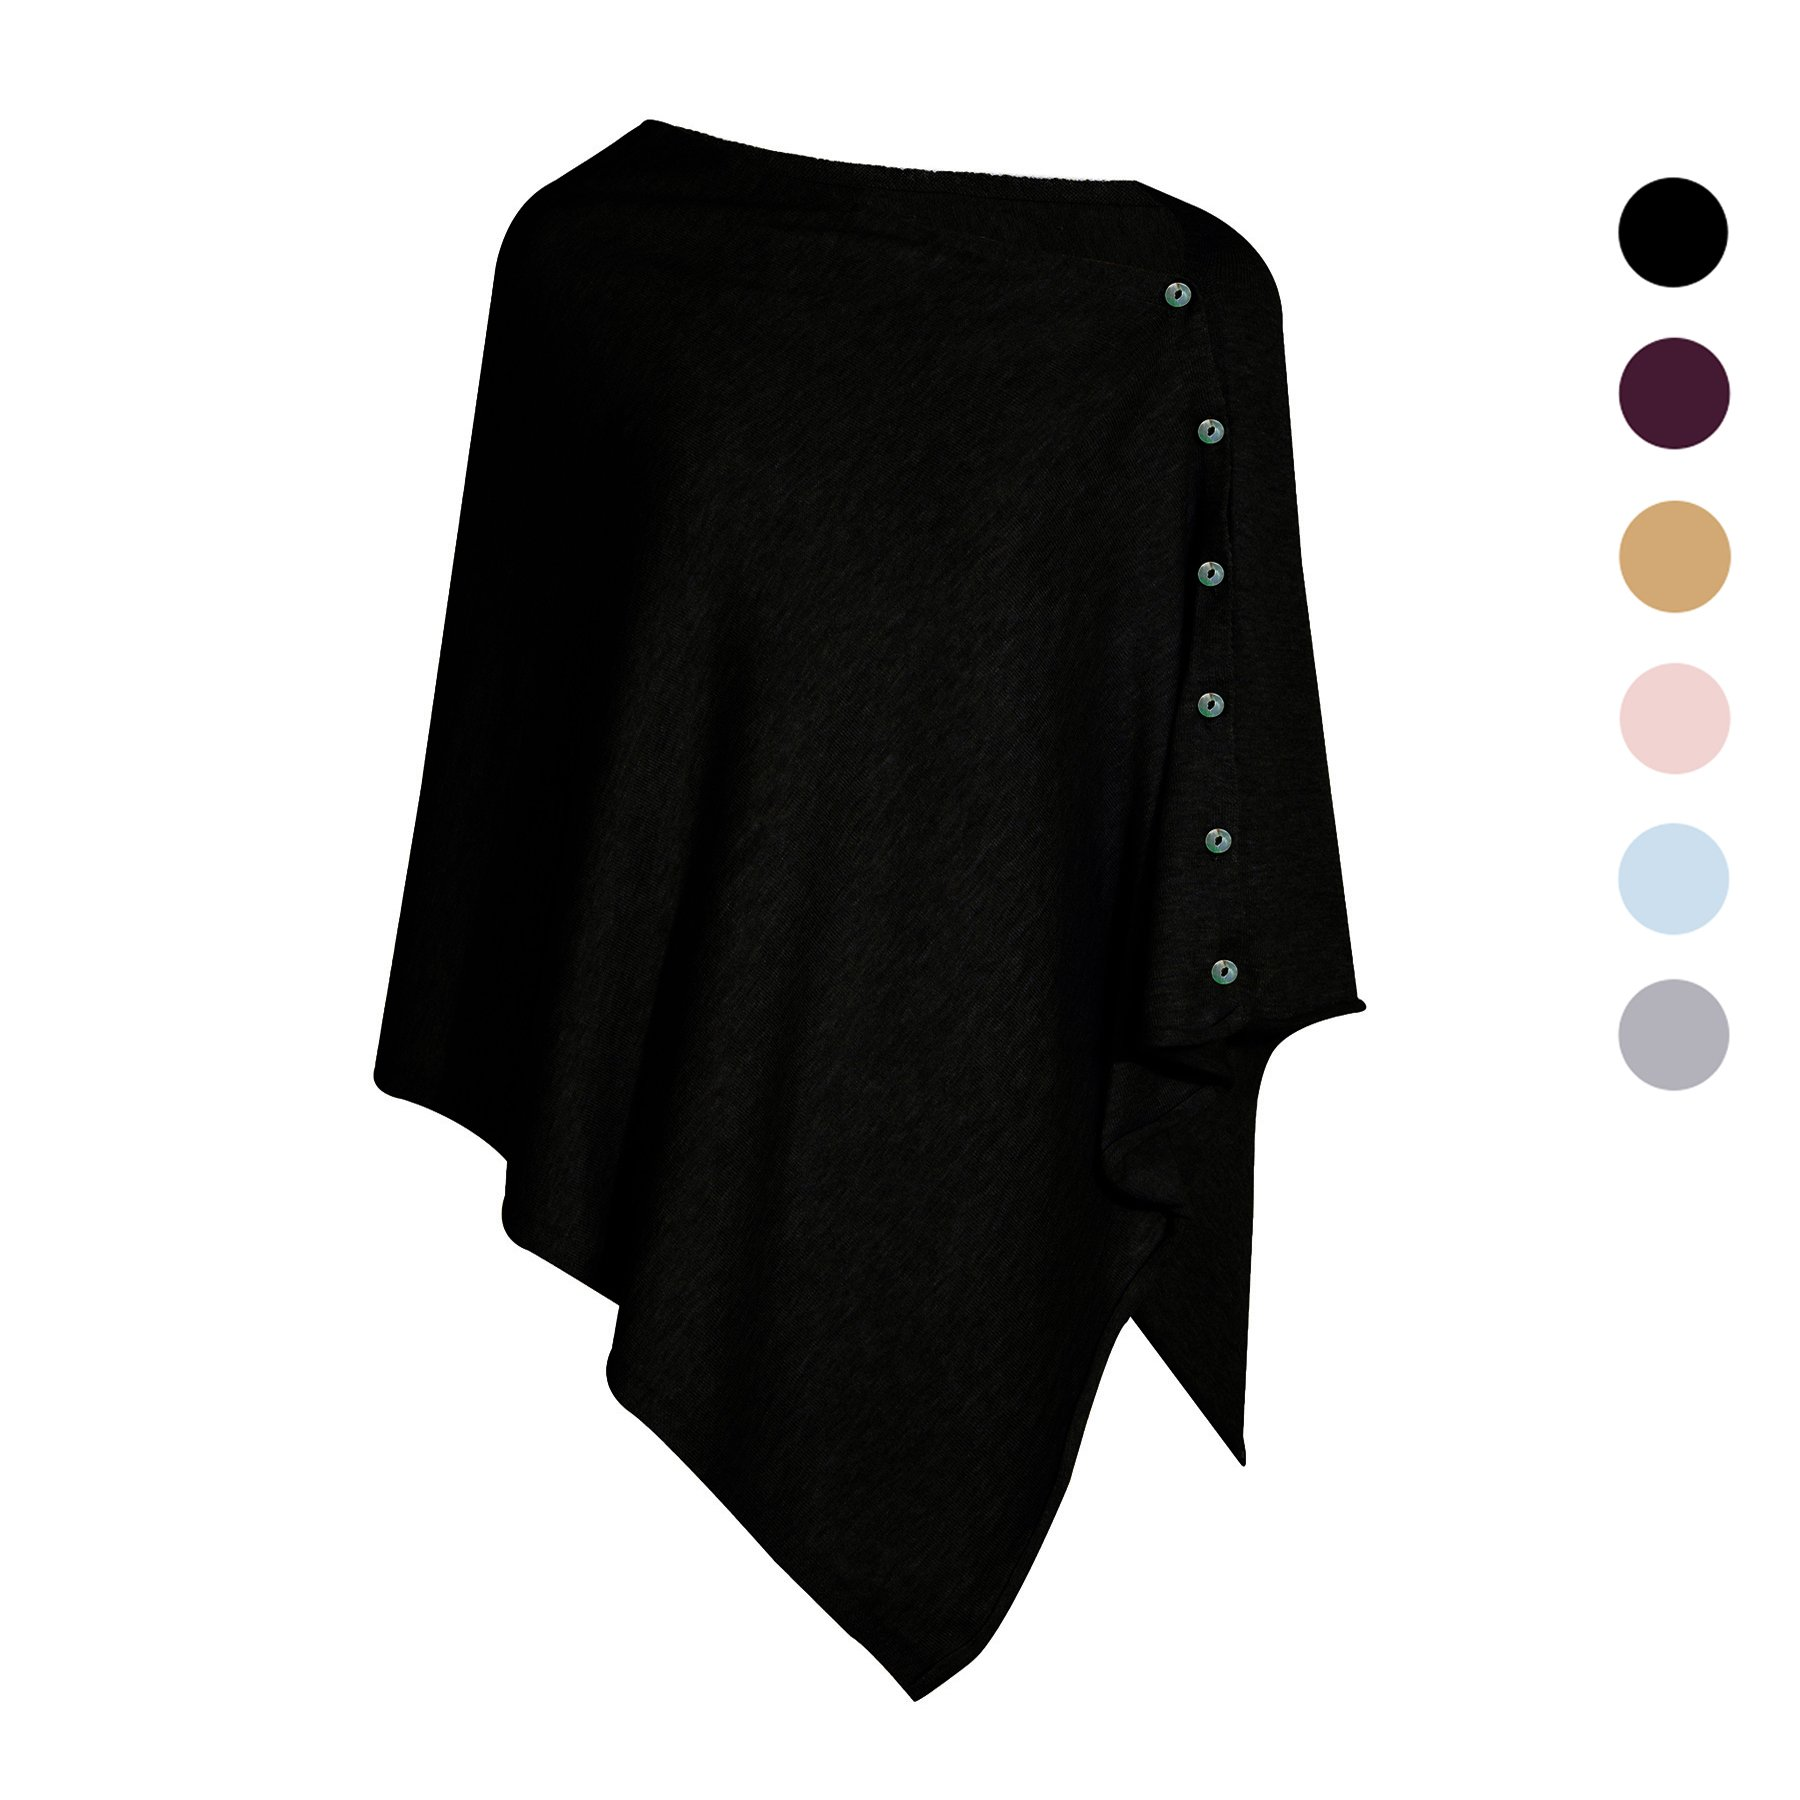 PULI Women's Versatile Knitted scarf with Buttons Shawl scarf Poncho Cape Cardigan, Black